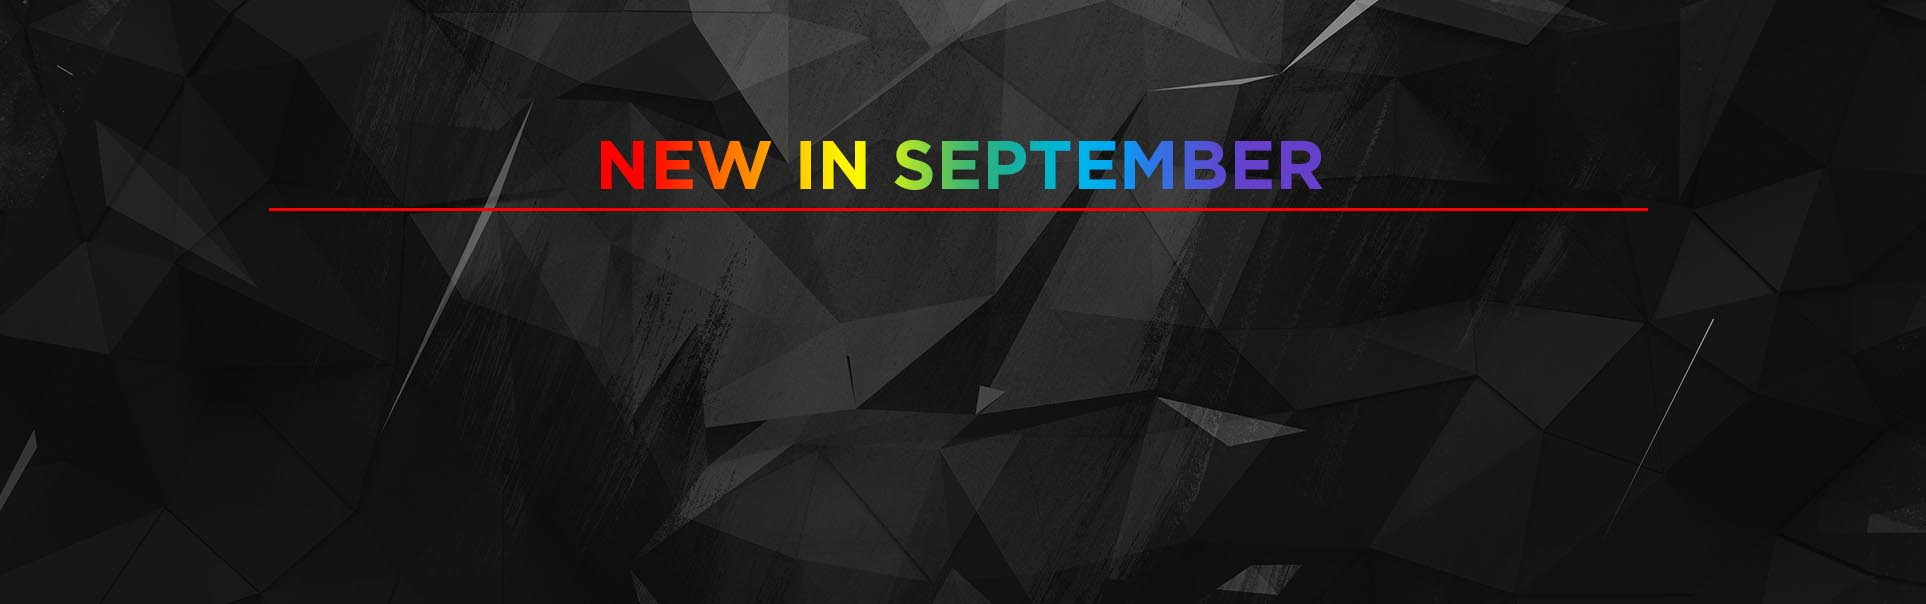 New In September